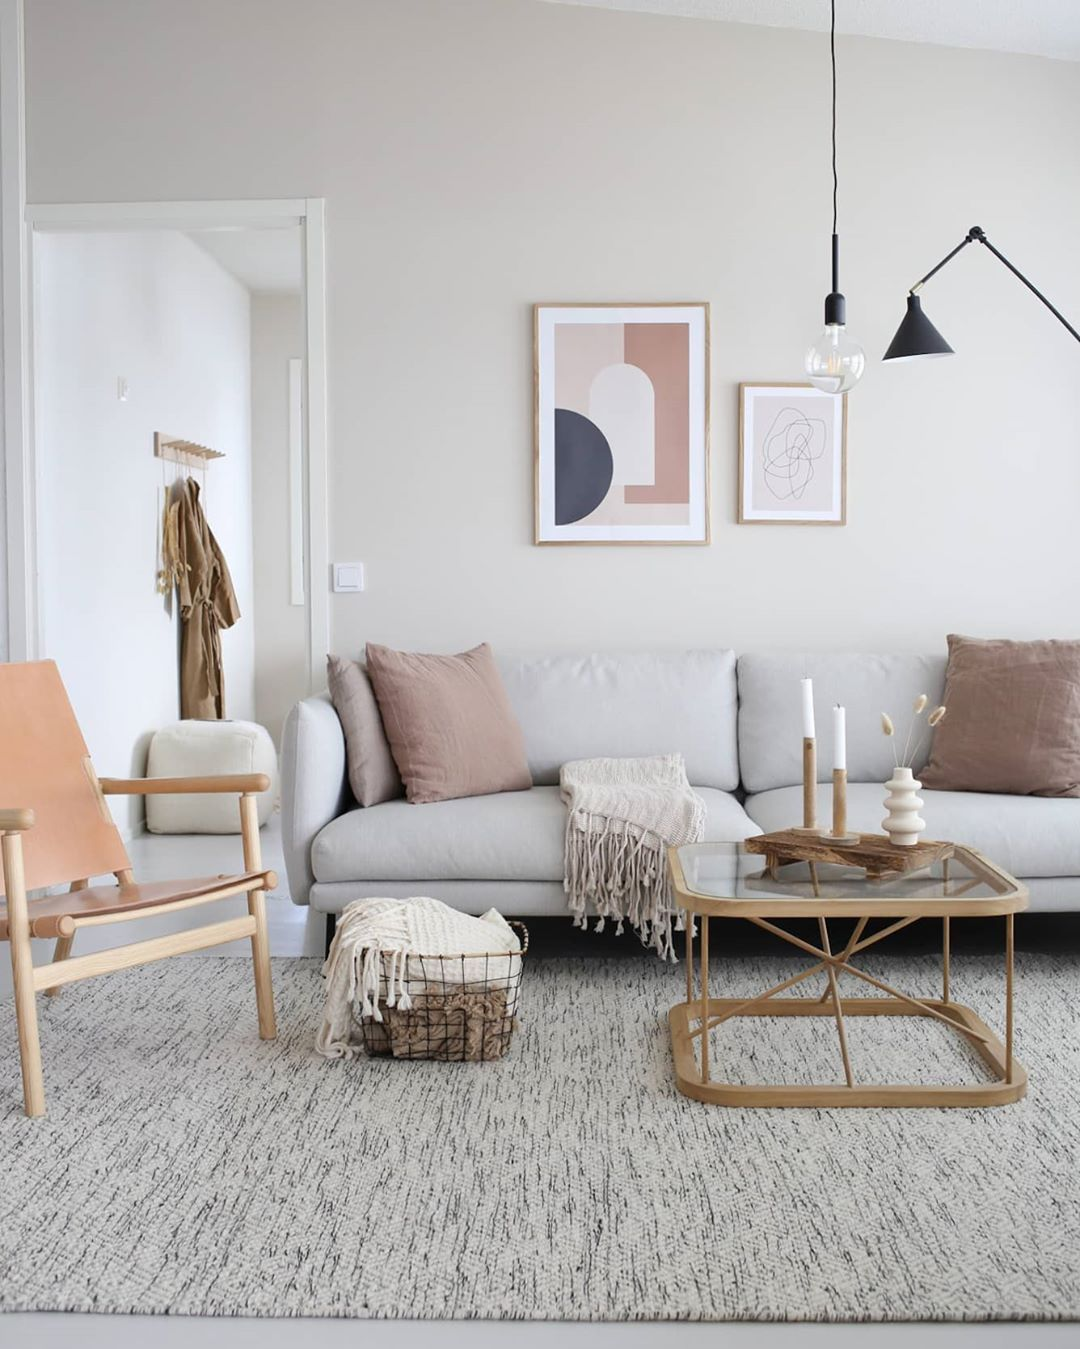 Create Insane Scandinavian Interior Design Rooms In 2020 Scandinavian Interior Living Room Scandinavian Interior Bedroom Modern Scandinavian Interior